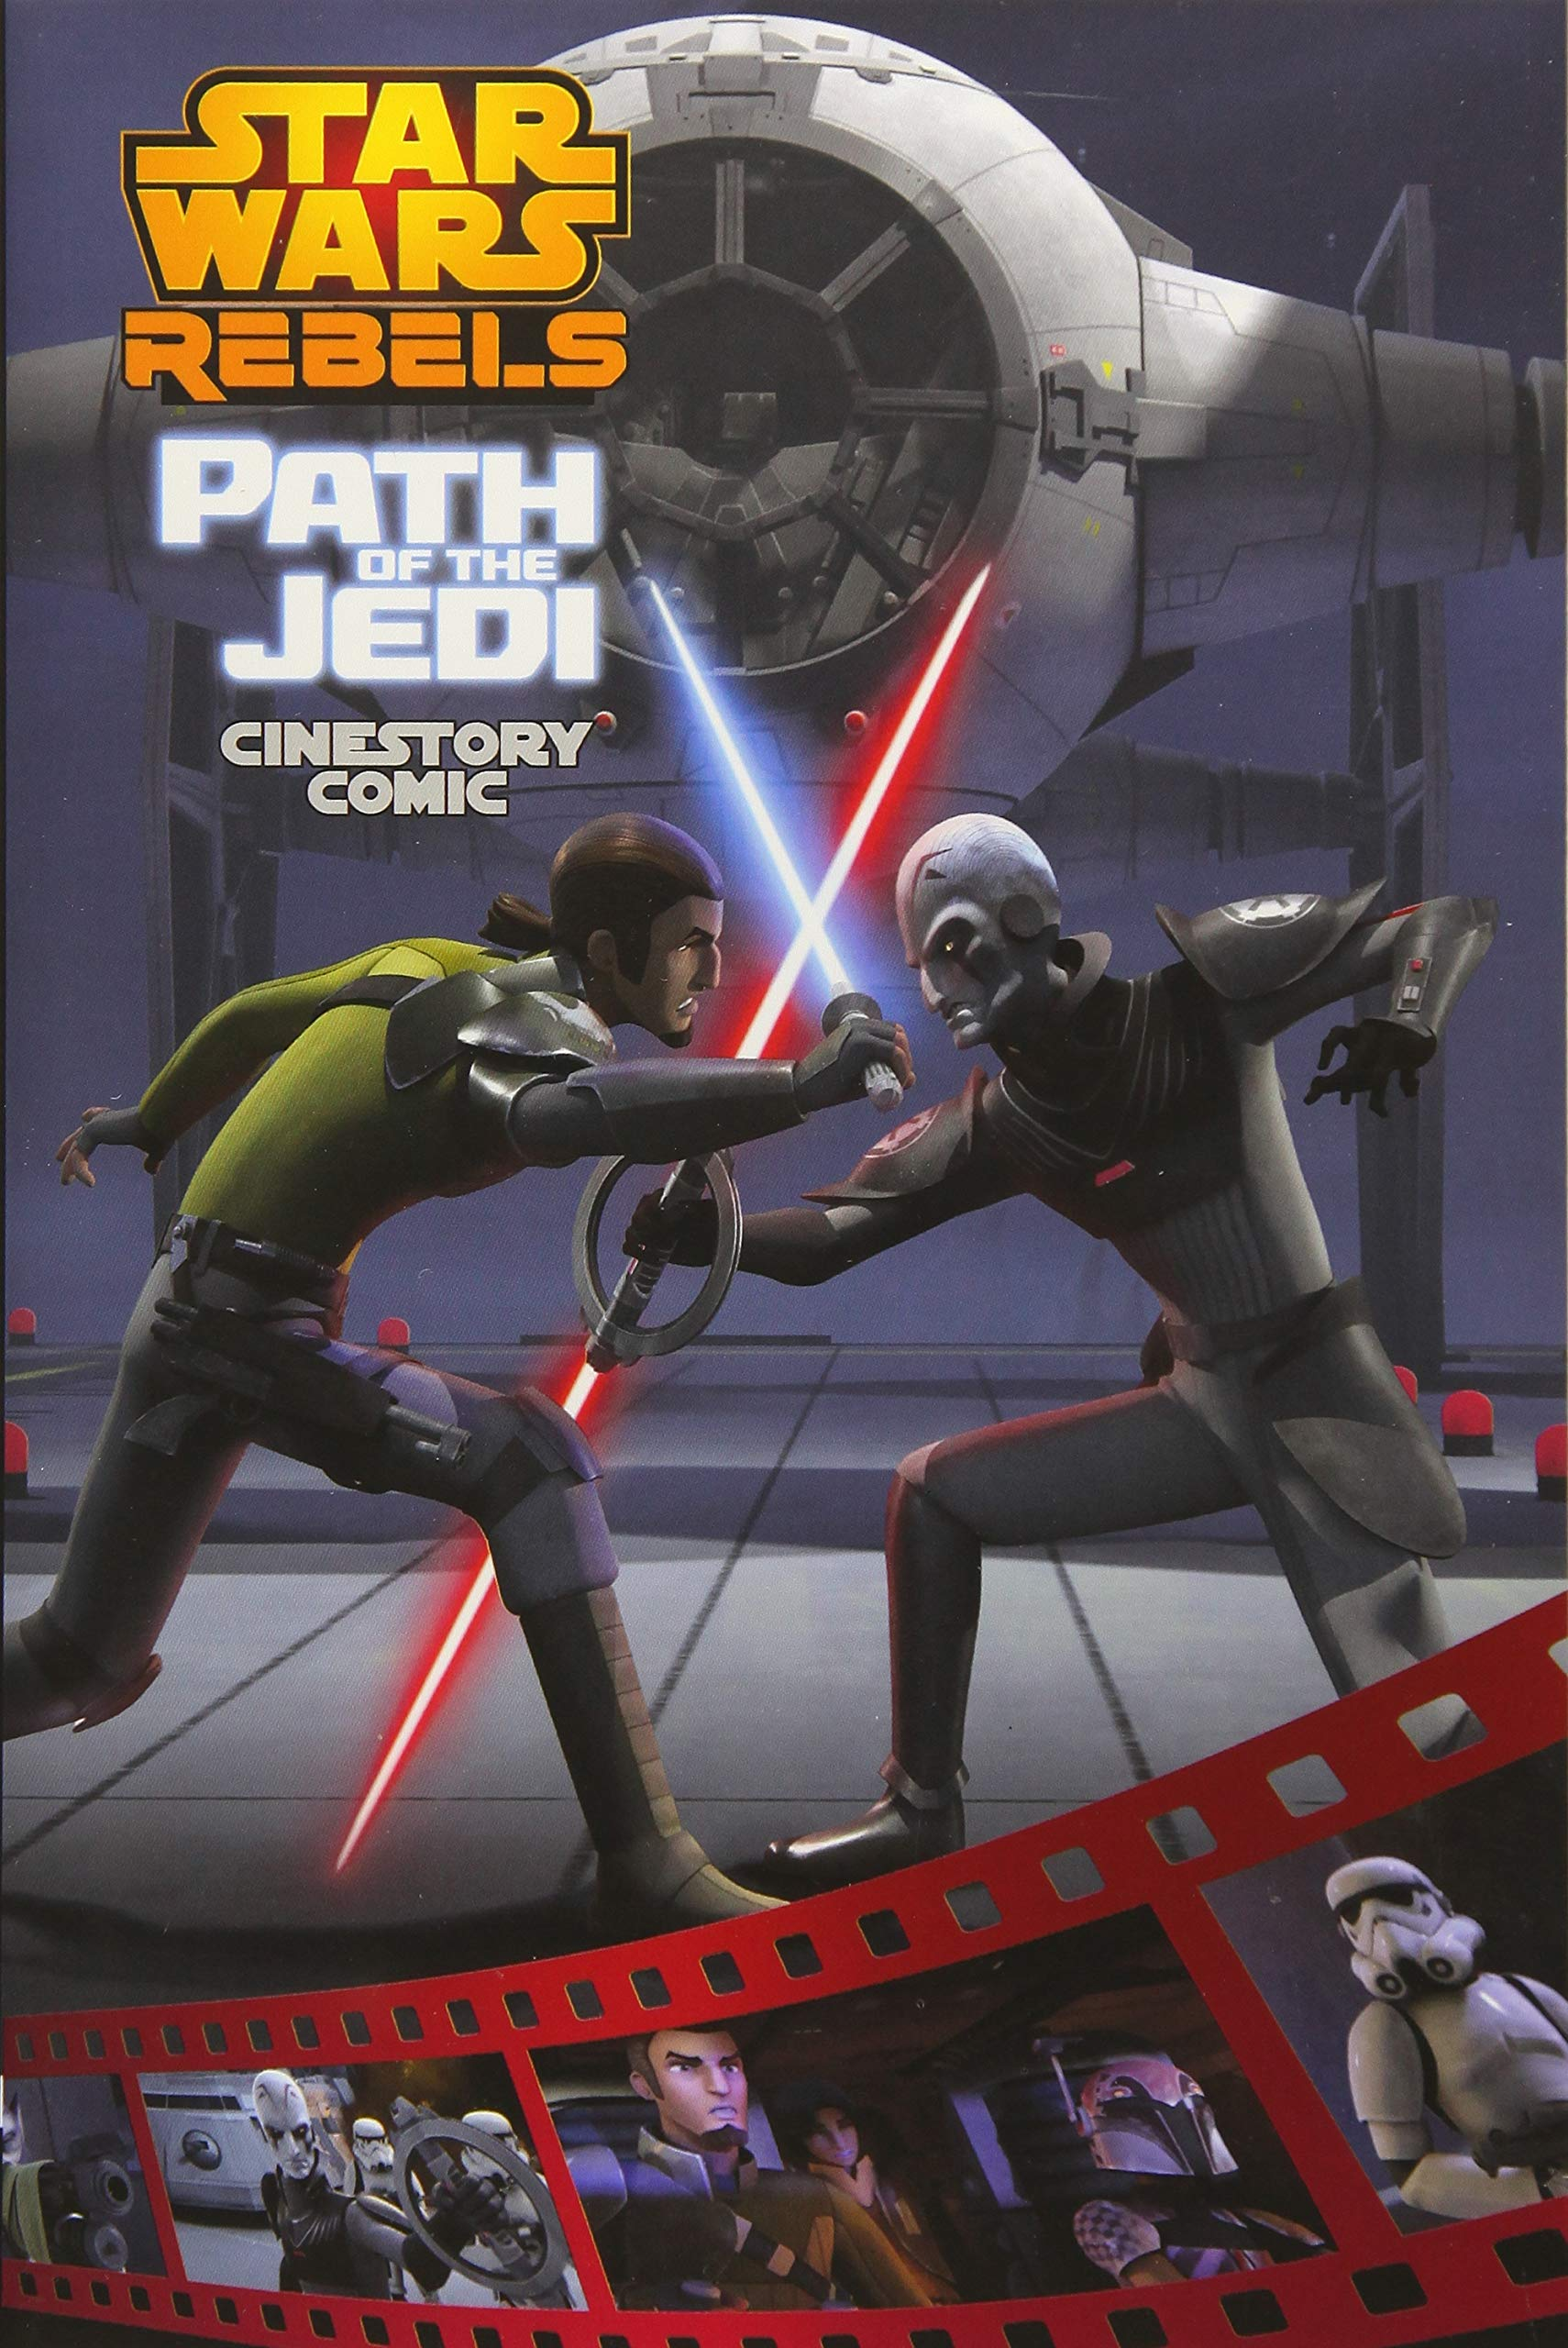 Star Wars Rebels: Path of the Jedi Cinestory Comic